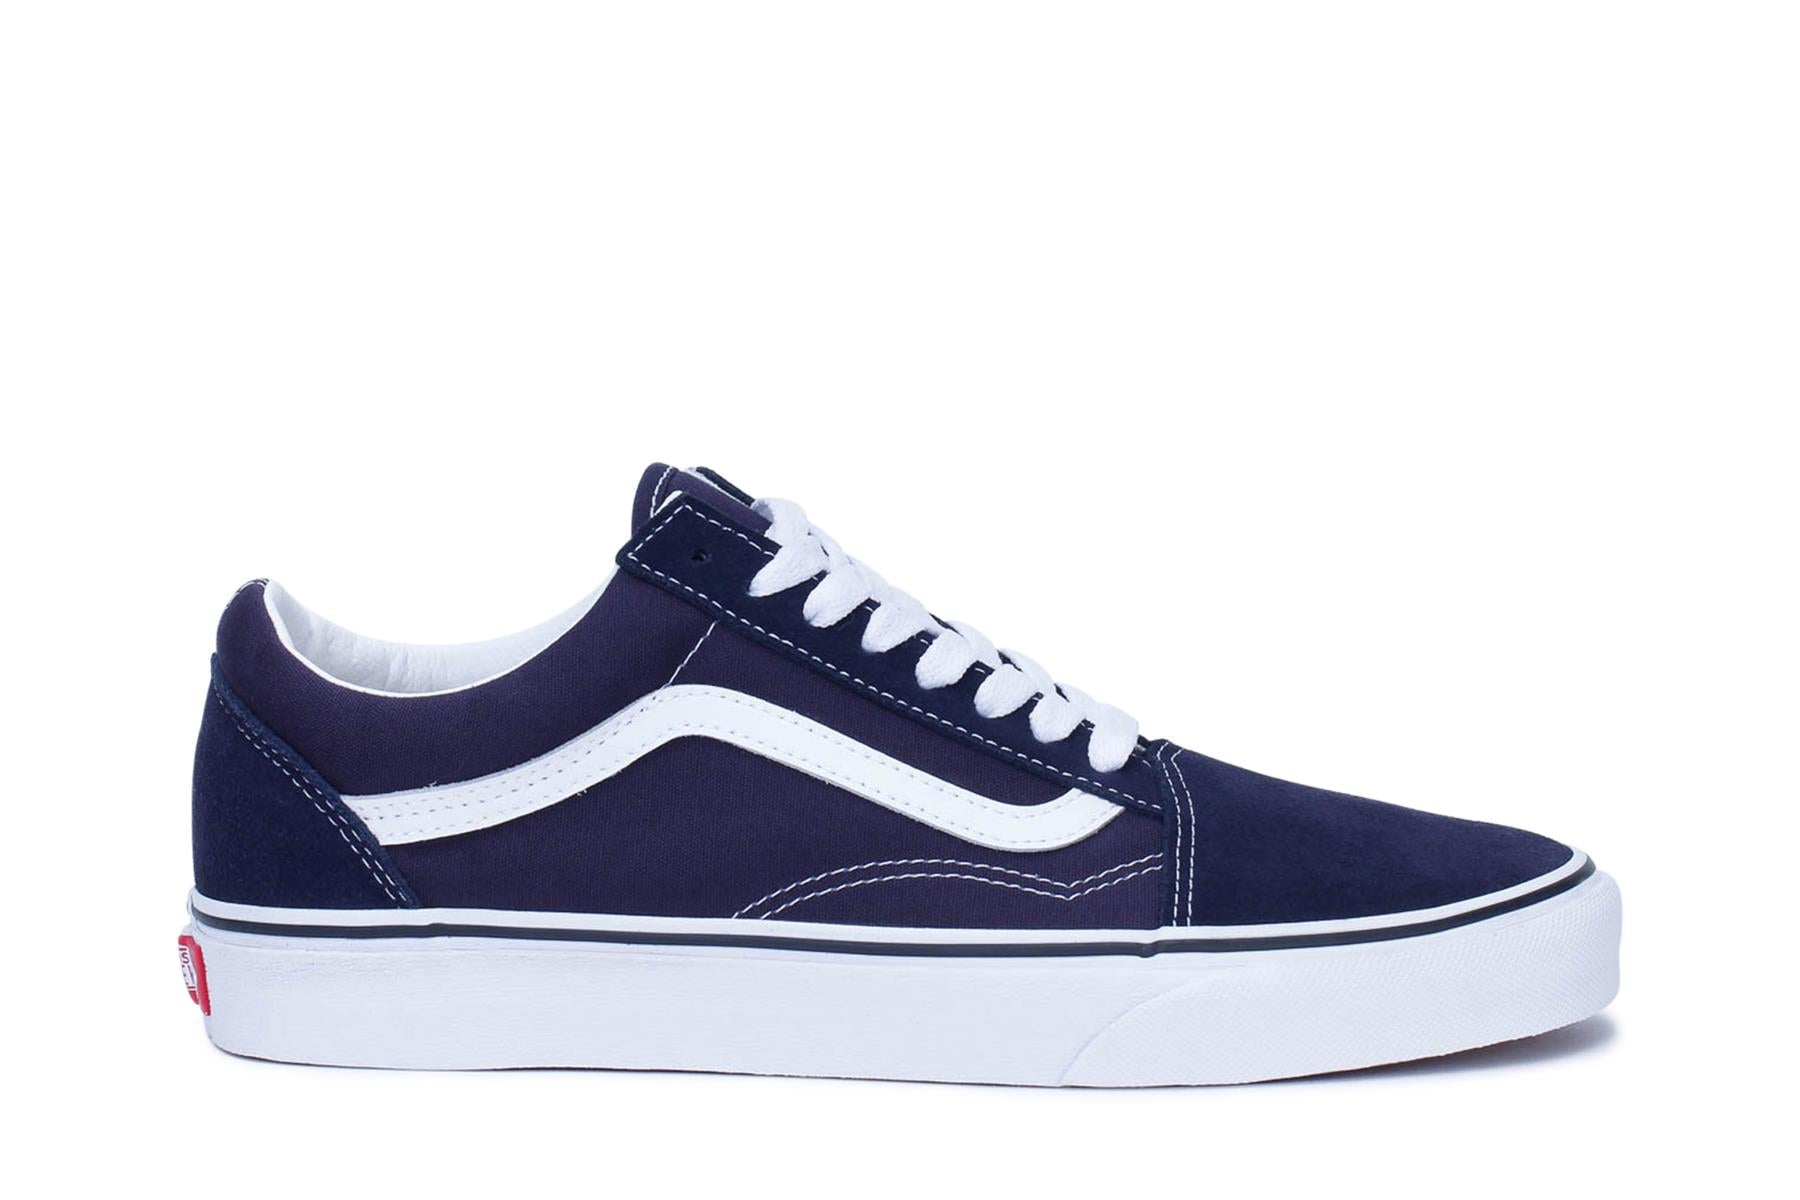 vans-mens-old-skool-sneakers-night-sky-true-white-vn0a4bv5v7e-main